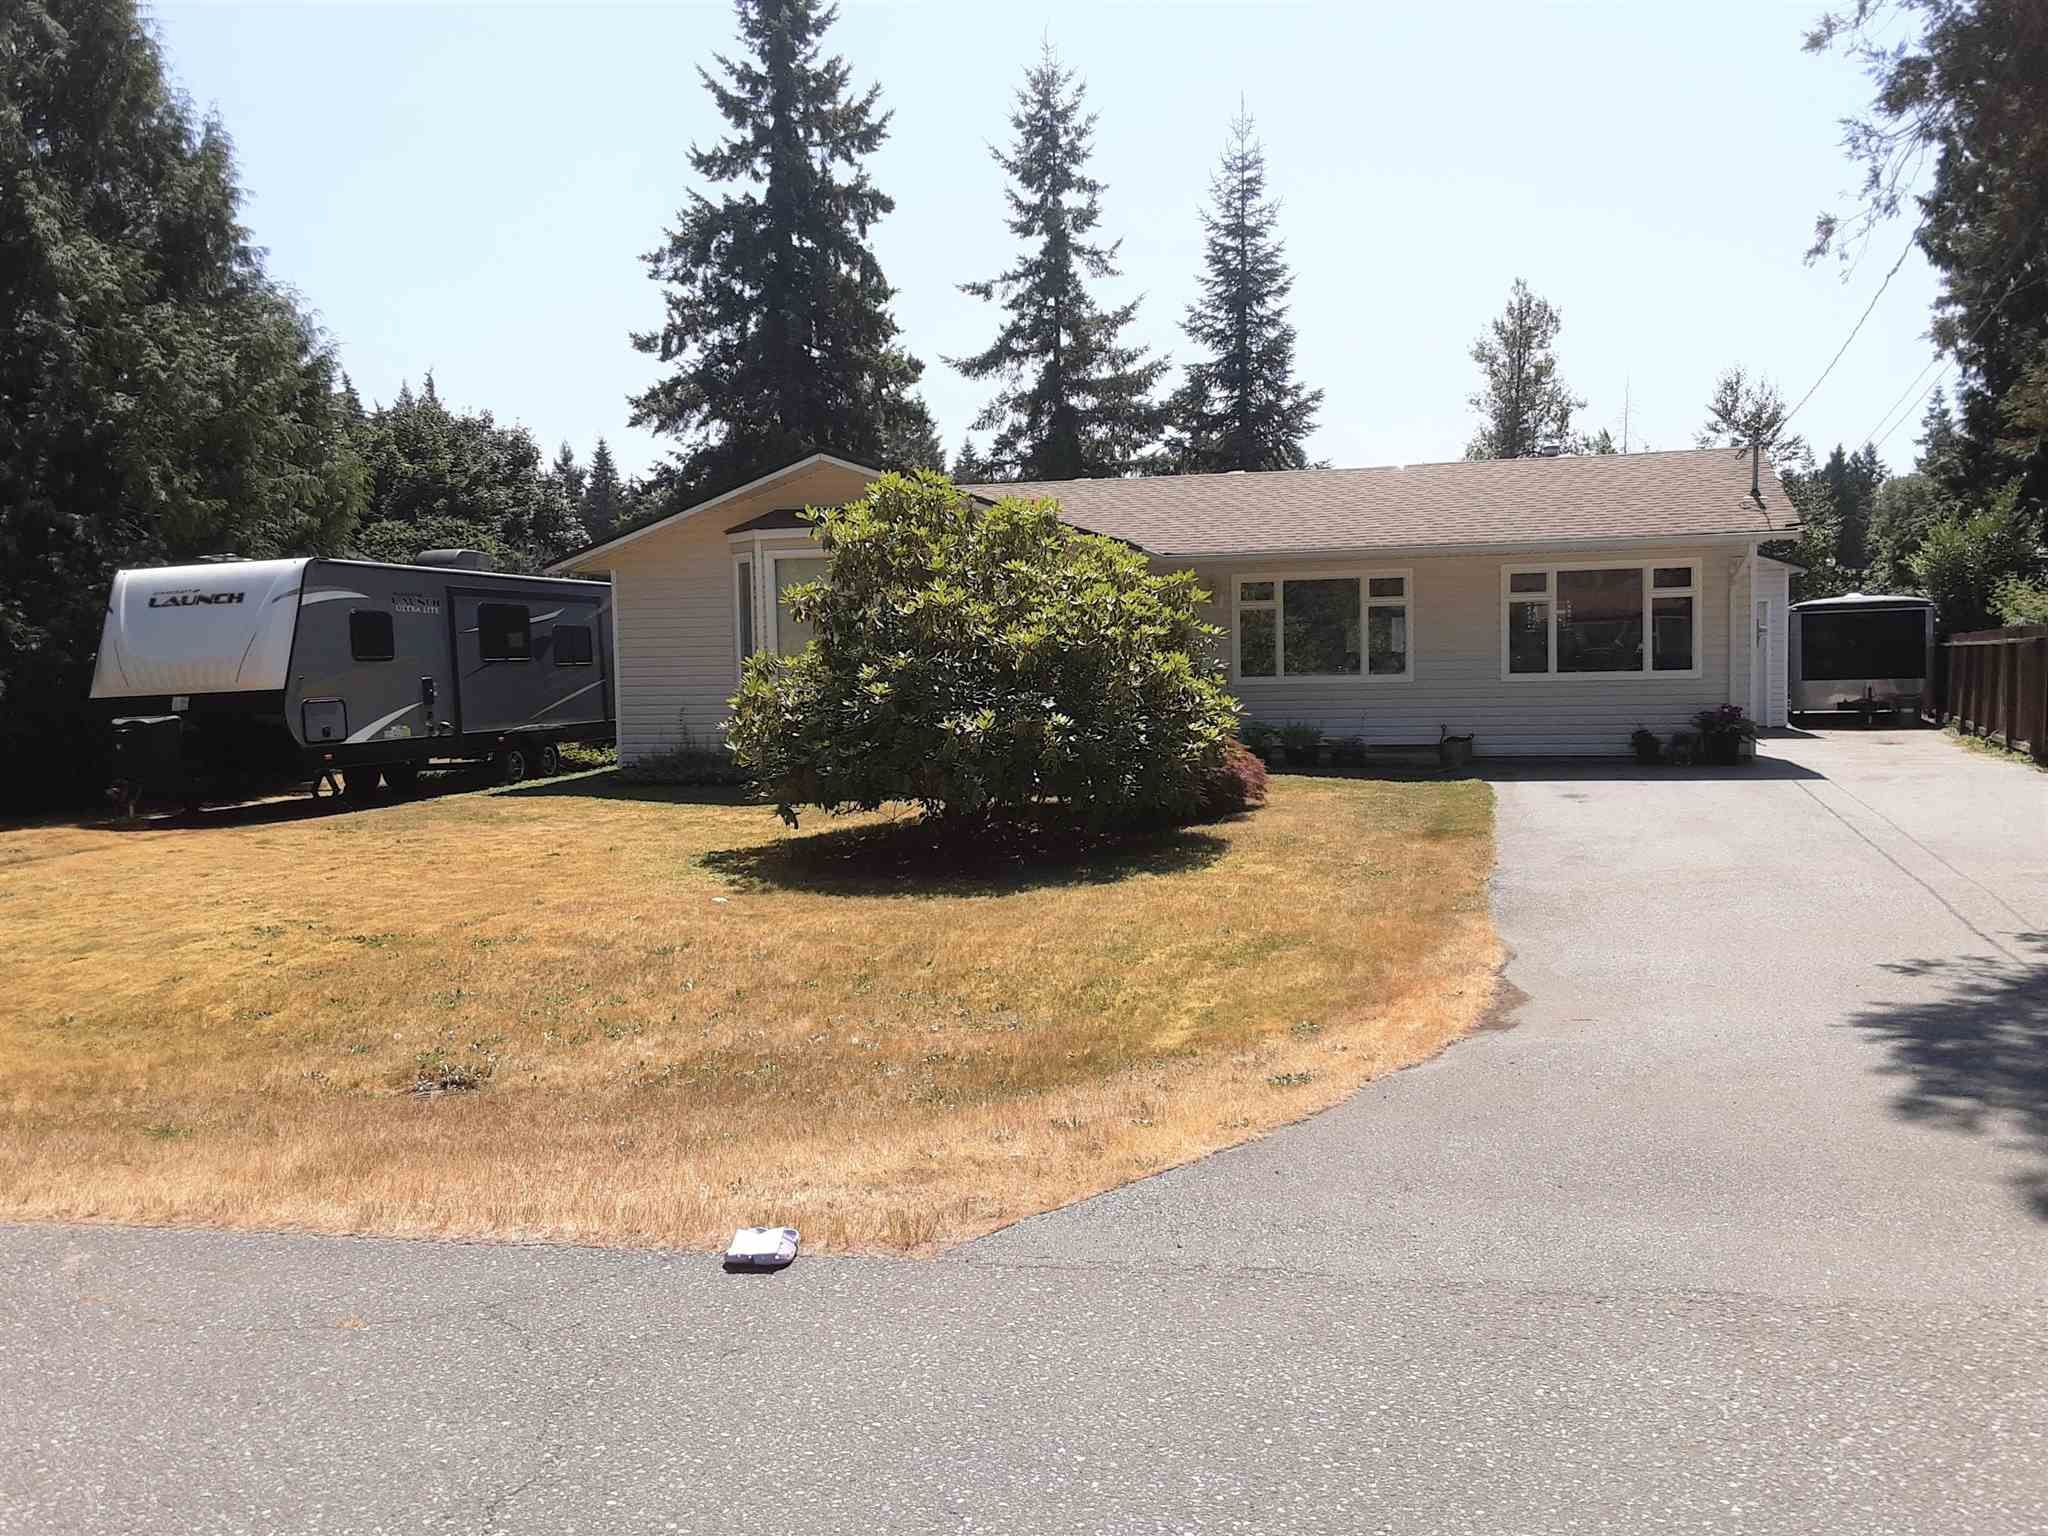 """Main Photo: 19740 40A Avenue in Langley: Brookswood Langley House for sale in """"BROOKSWOOD"""" : MLS®# R2602130"""